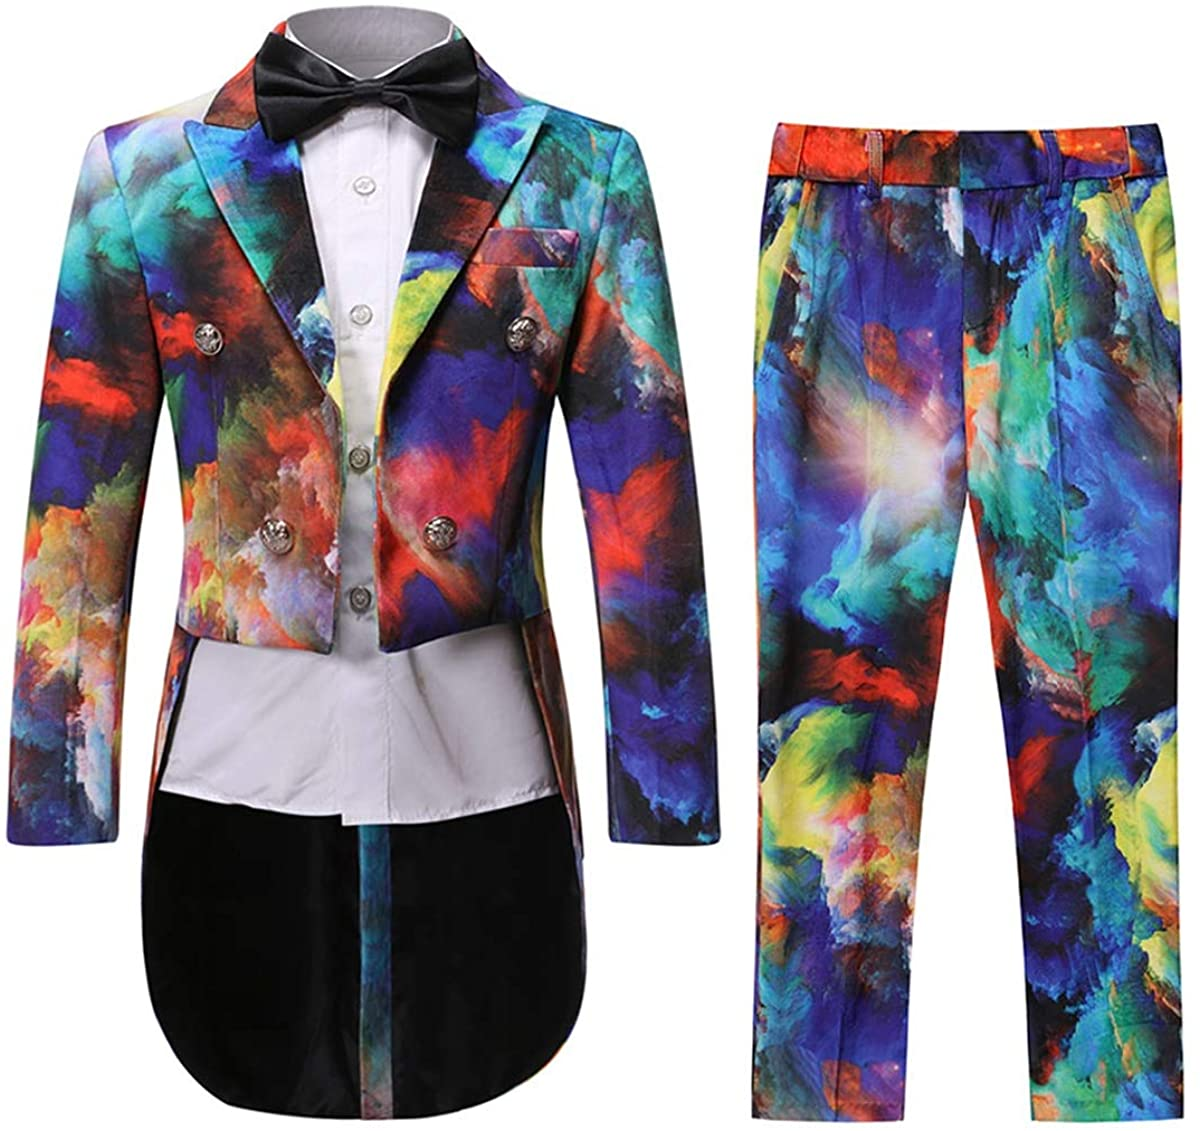 Boys Fashion Tuxedo Suit Colorful Dress 2 Pieces Blazer Pants with Tail